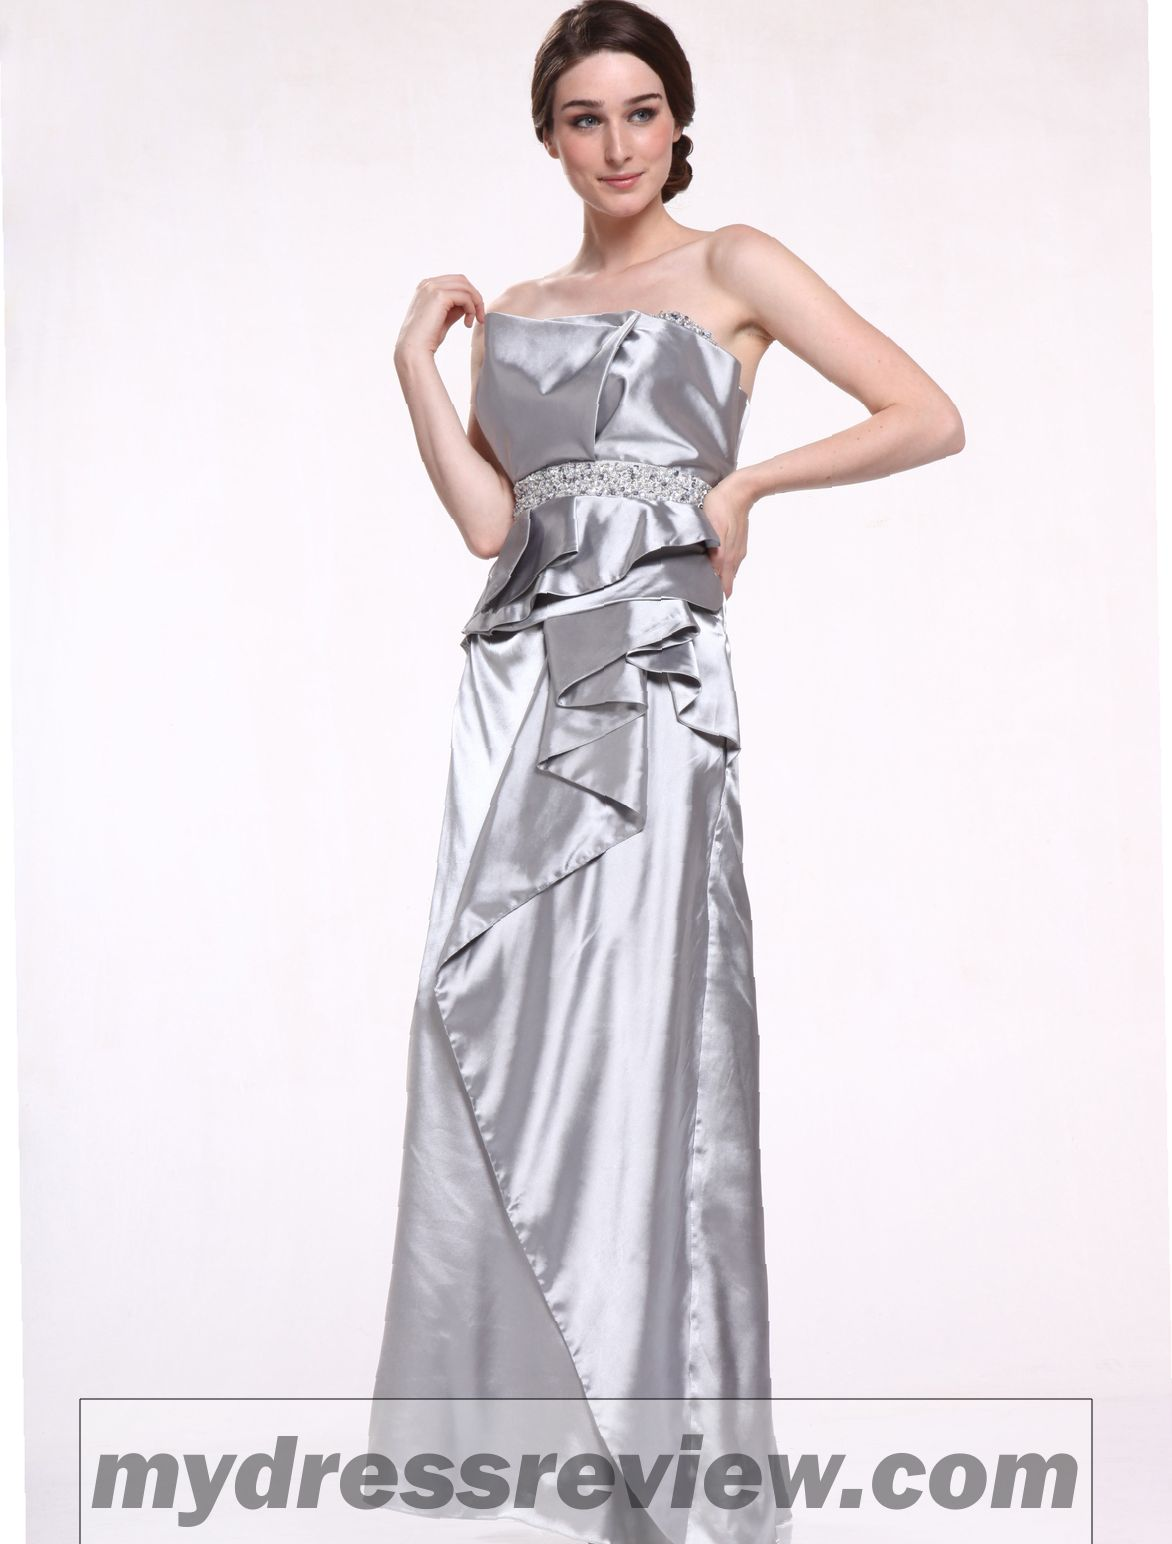 Floor Length Strapless Dress & Clothing Brand Reviews